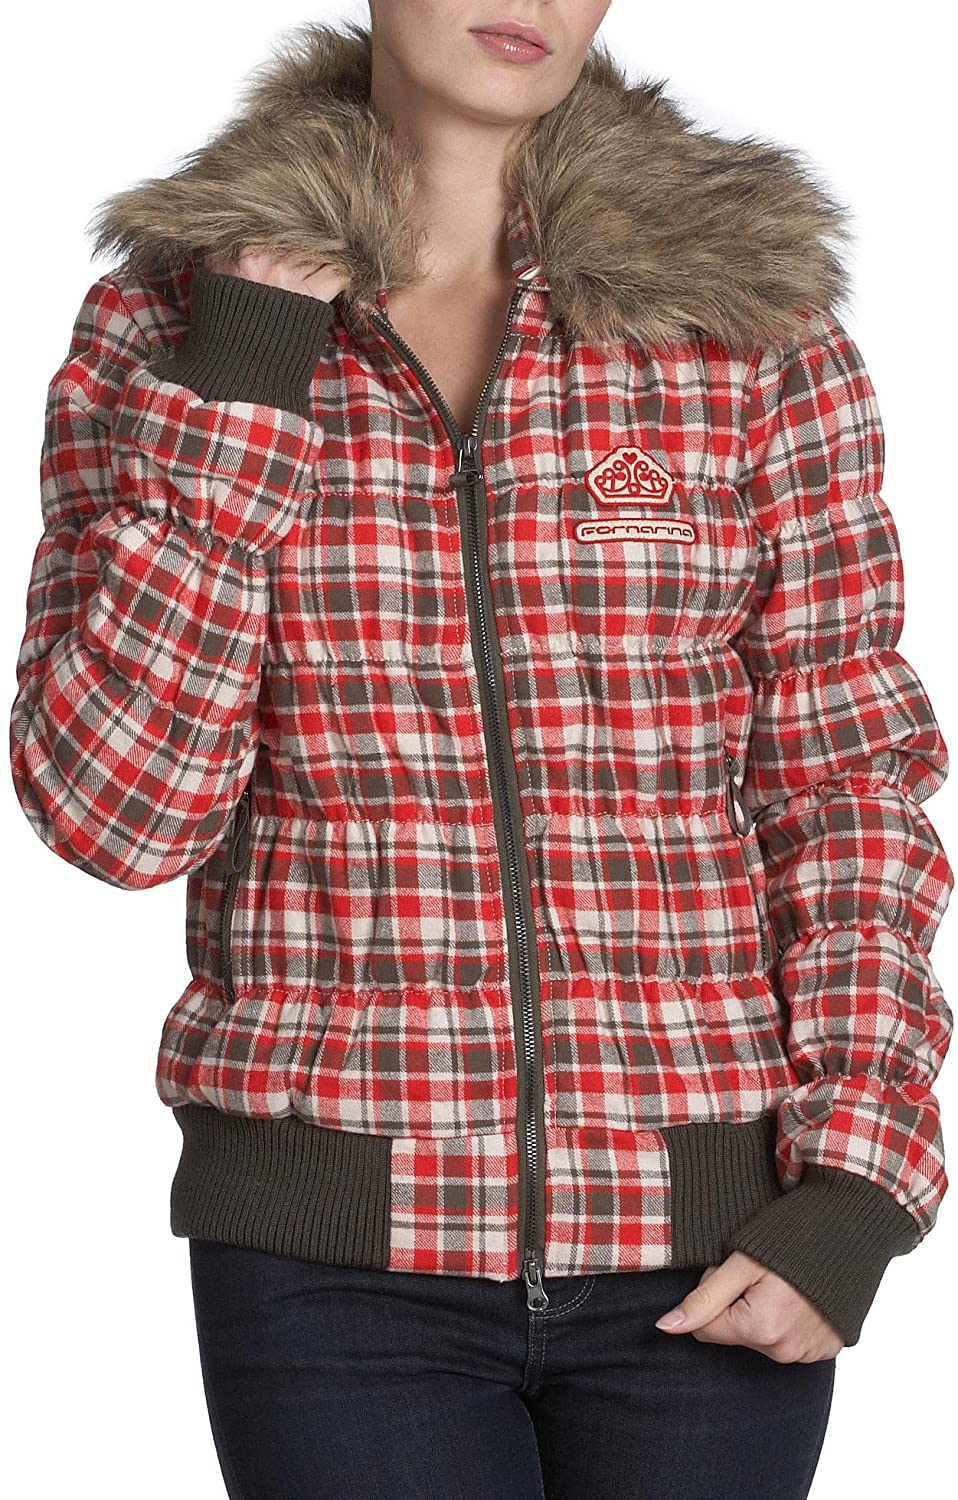 Fornarina Womens Jacky Plaid Fur Collar Zip Up Coat Sz Small Red/Multi